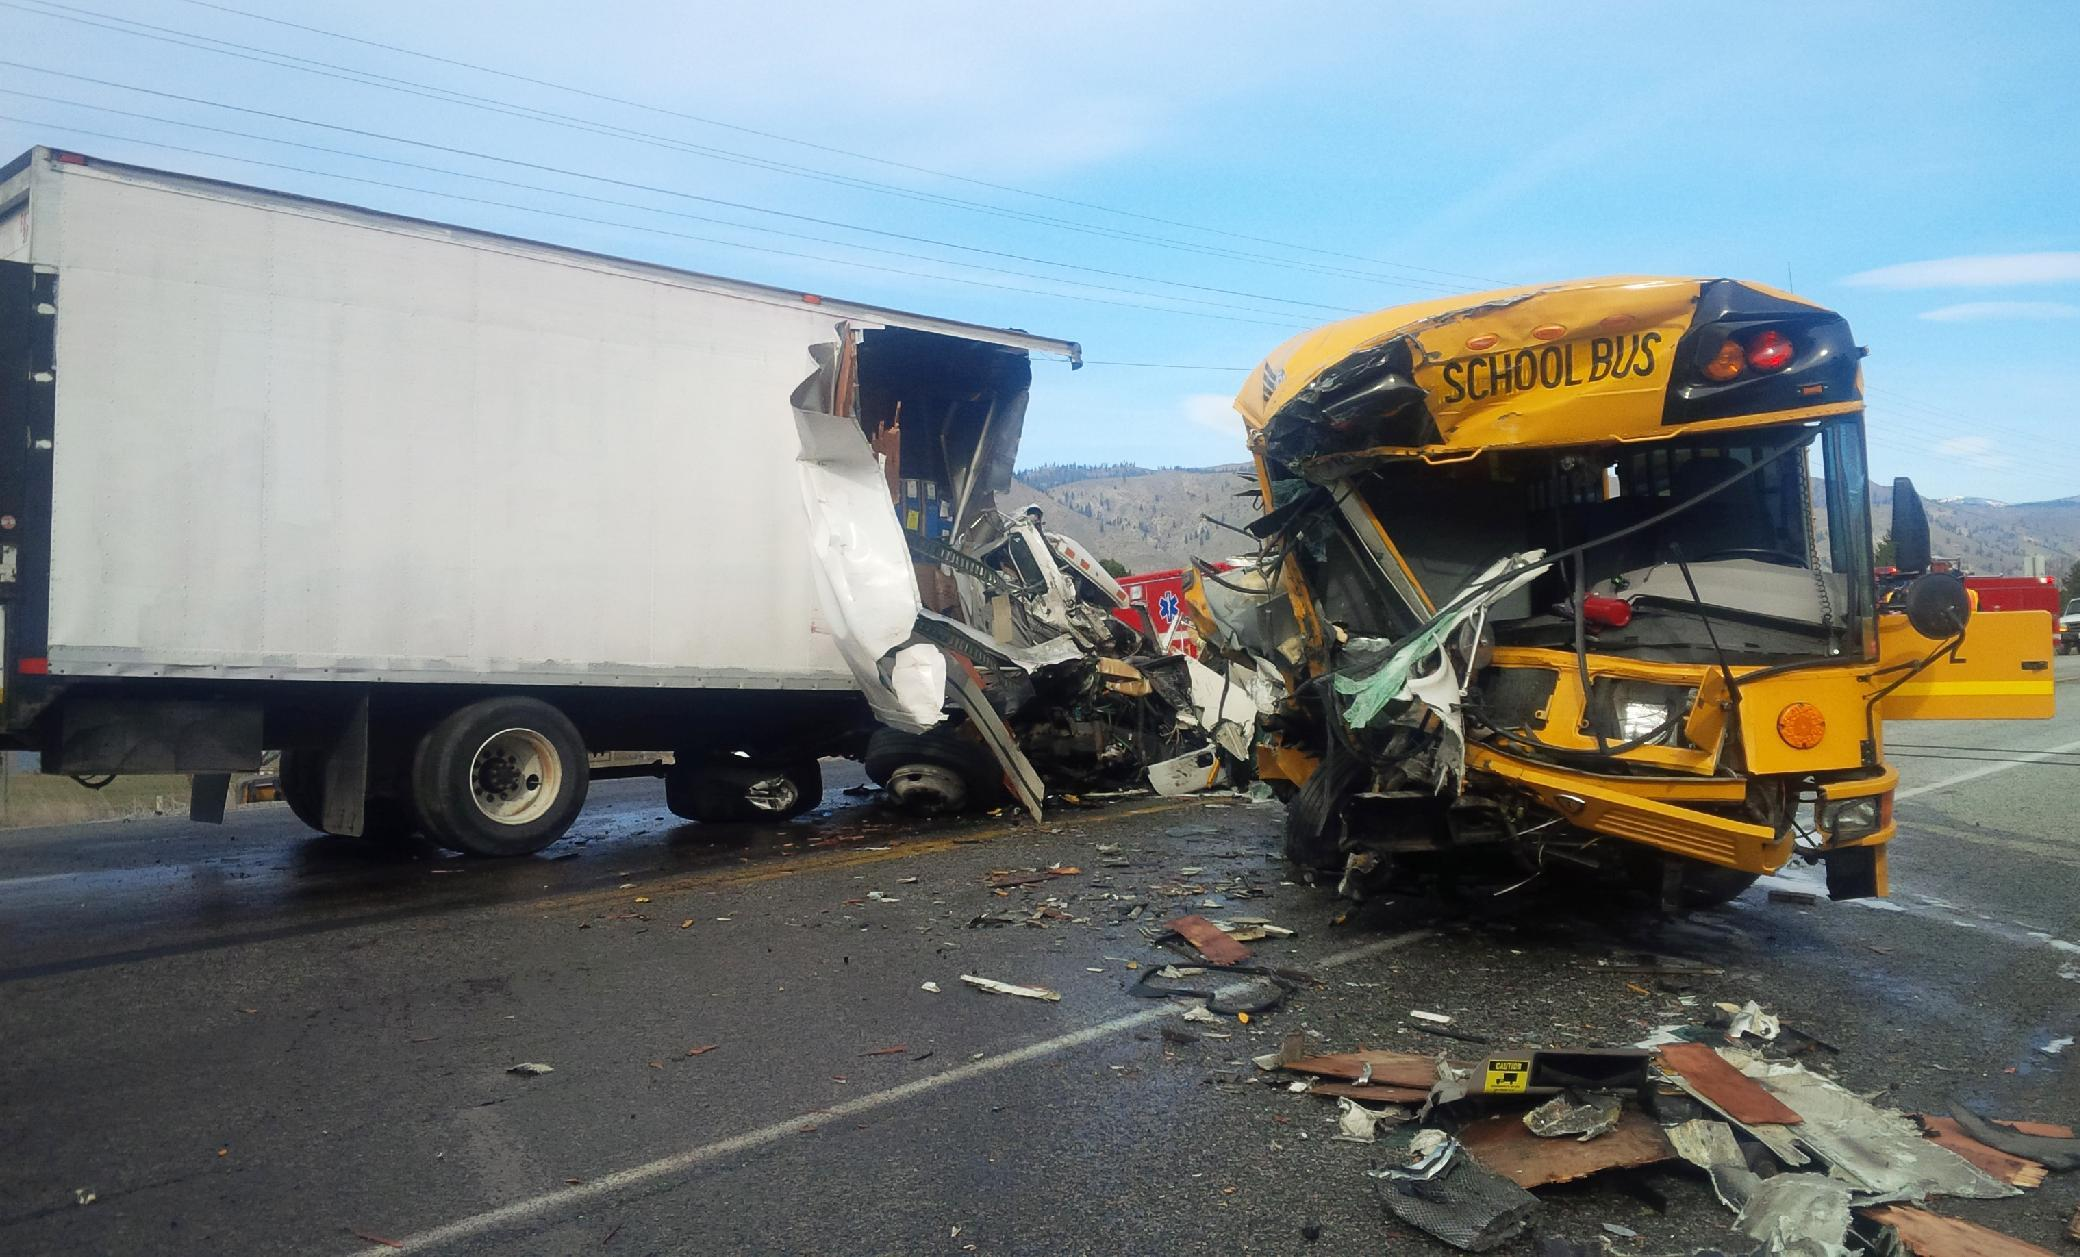 Officials: Truck driver fell asleep in fatal collision